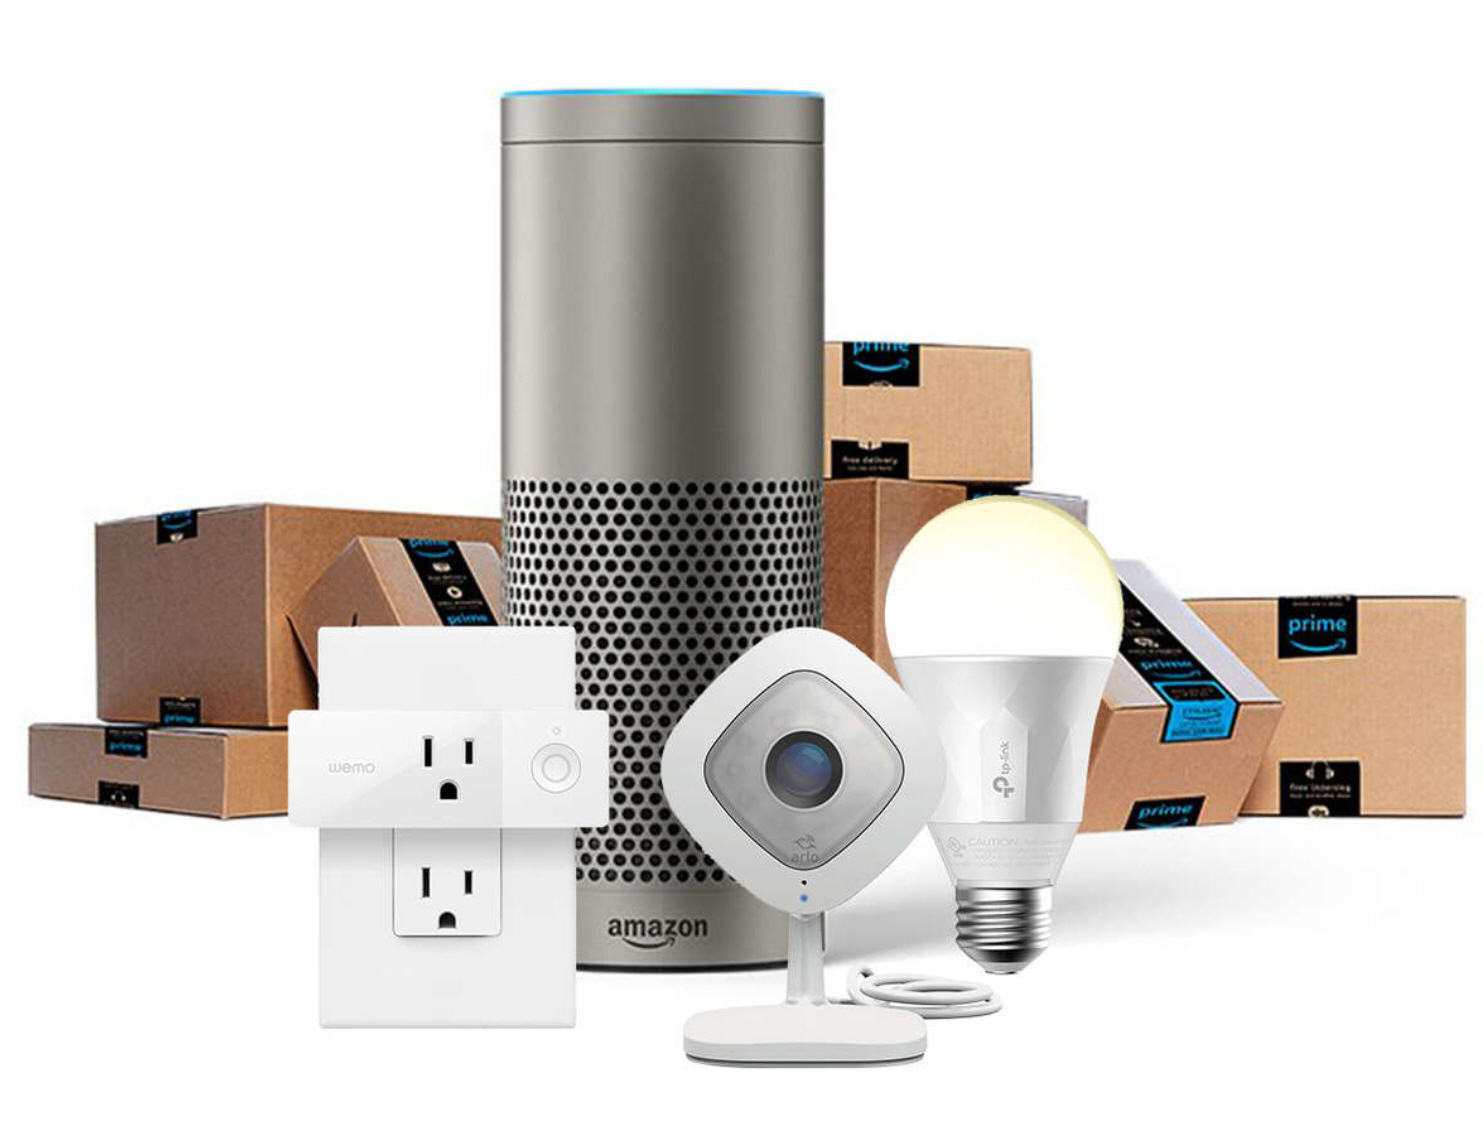 Amazon Smart Home Enter To Win Amazon Echo Smart Home Bundle Sweepstakes